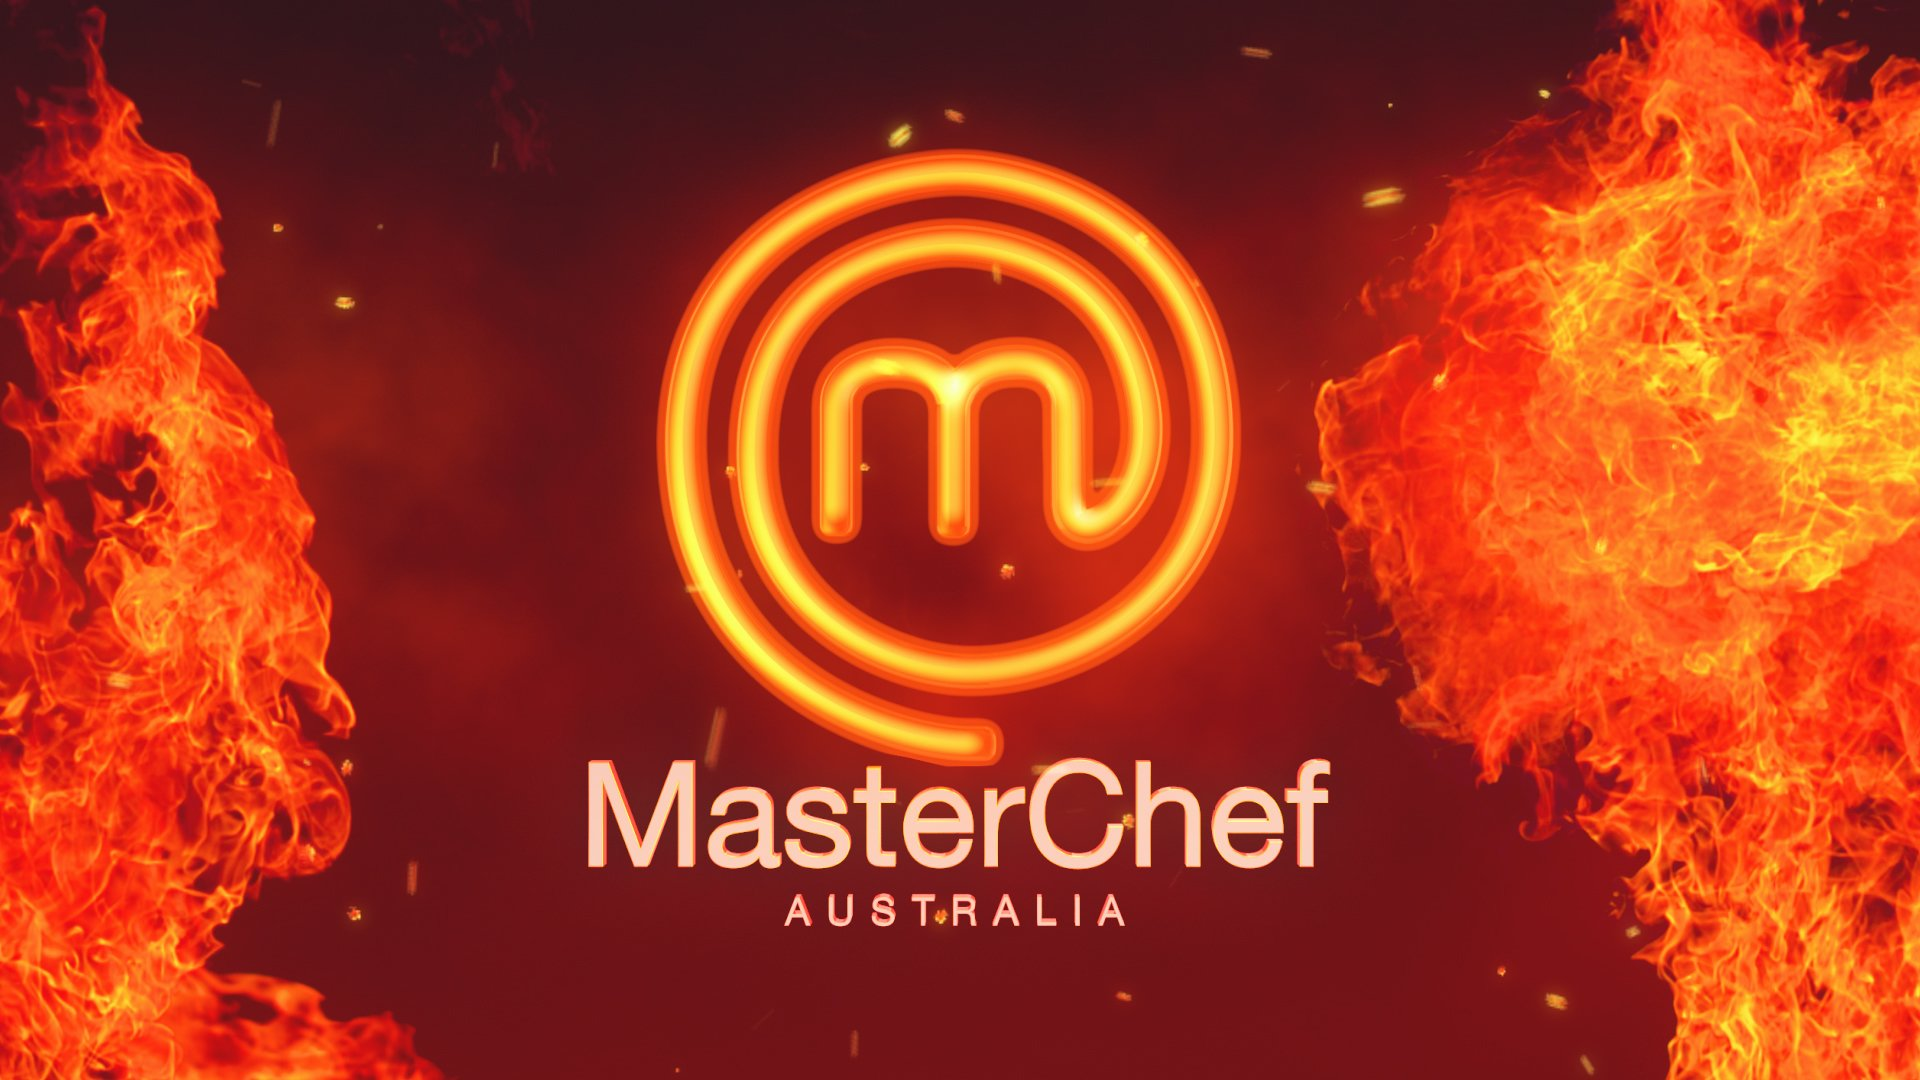 Masterchef Reality Series Cooking Food Master Chef Wallpapers Hd Desktop And Mobile Backgrounds